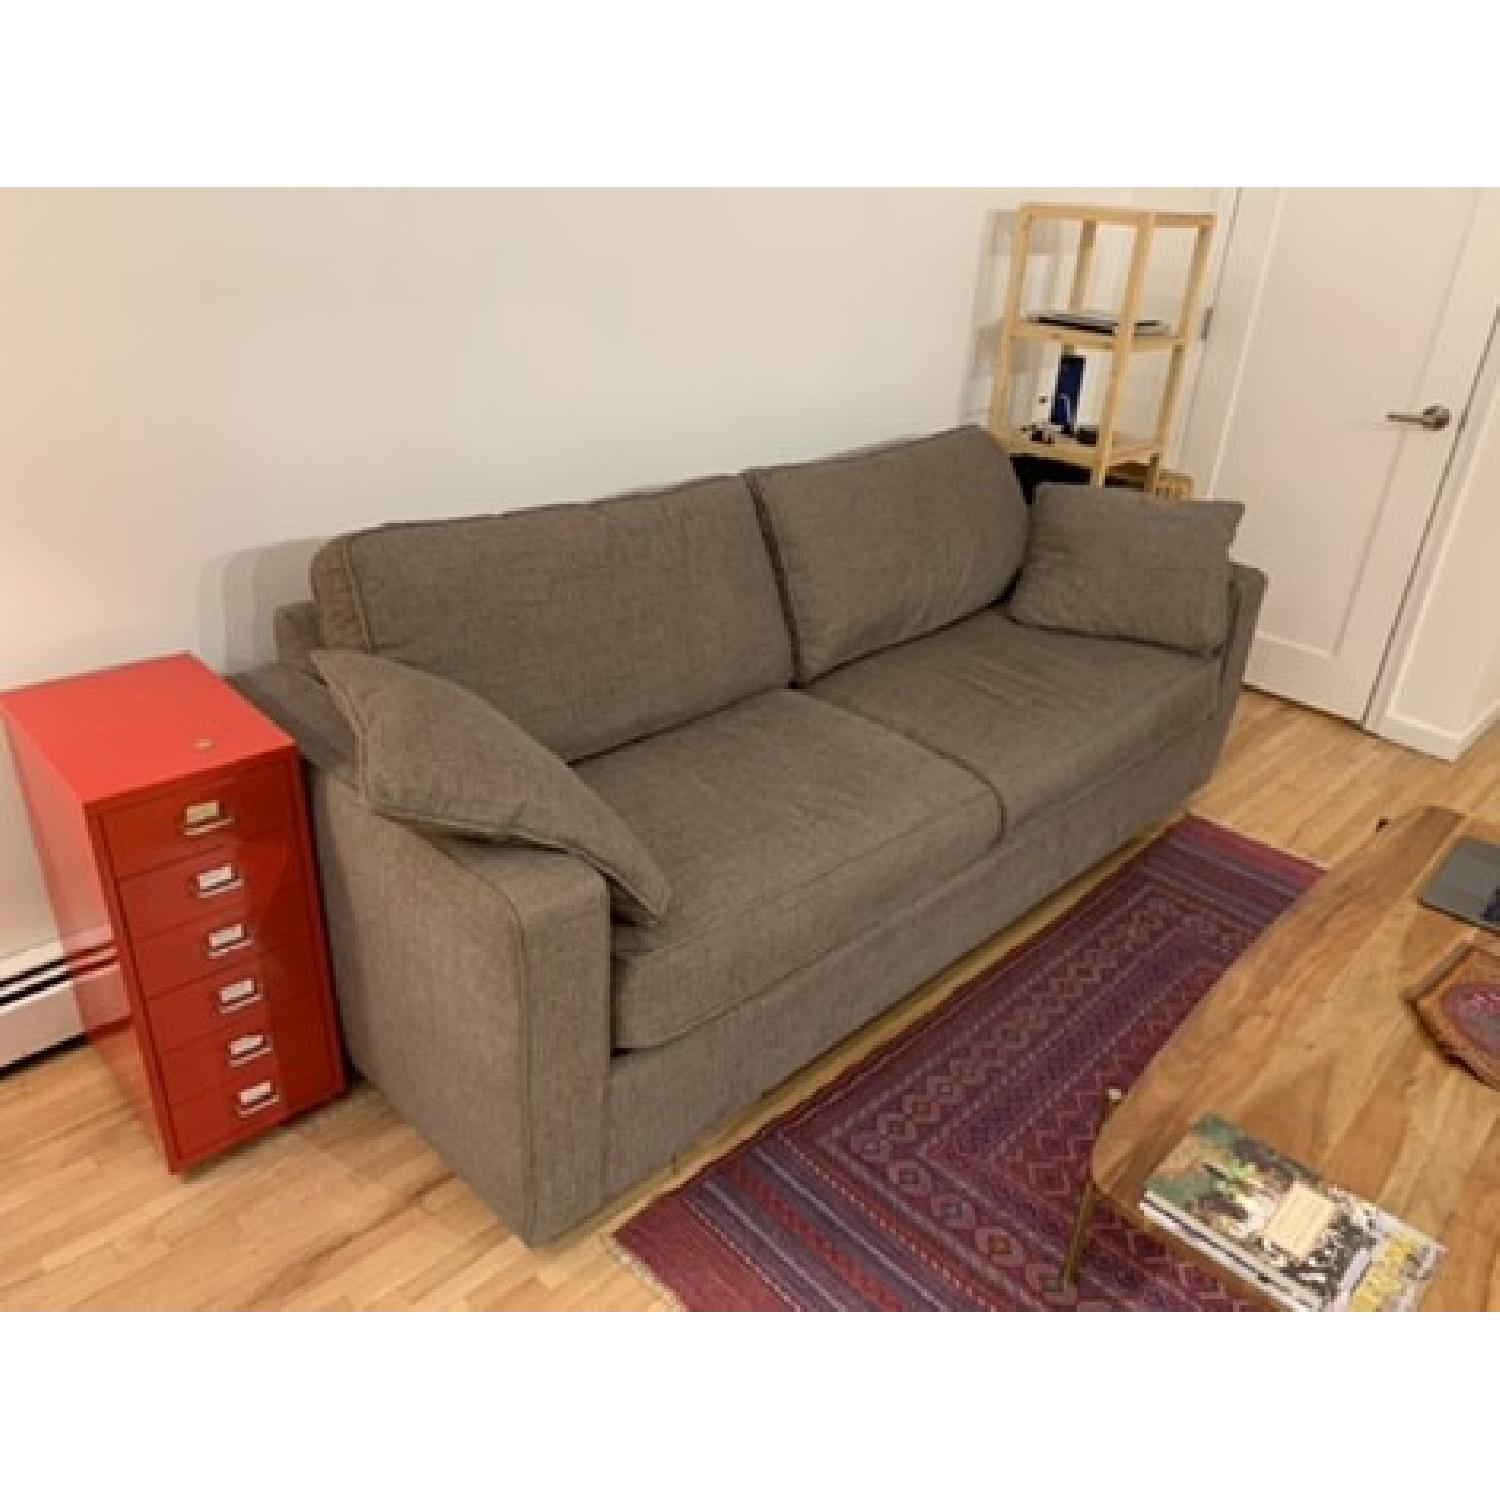 Room & Board York Sleeper Sofa-4